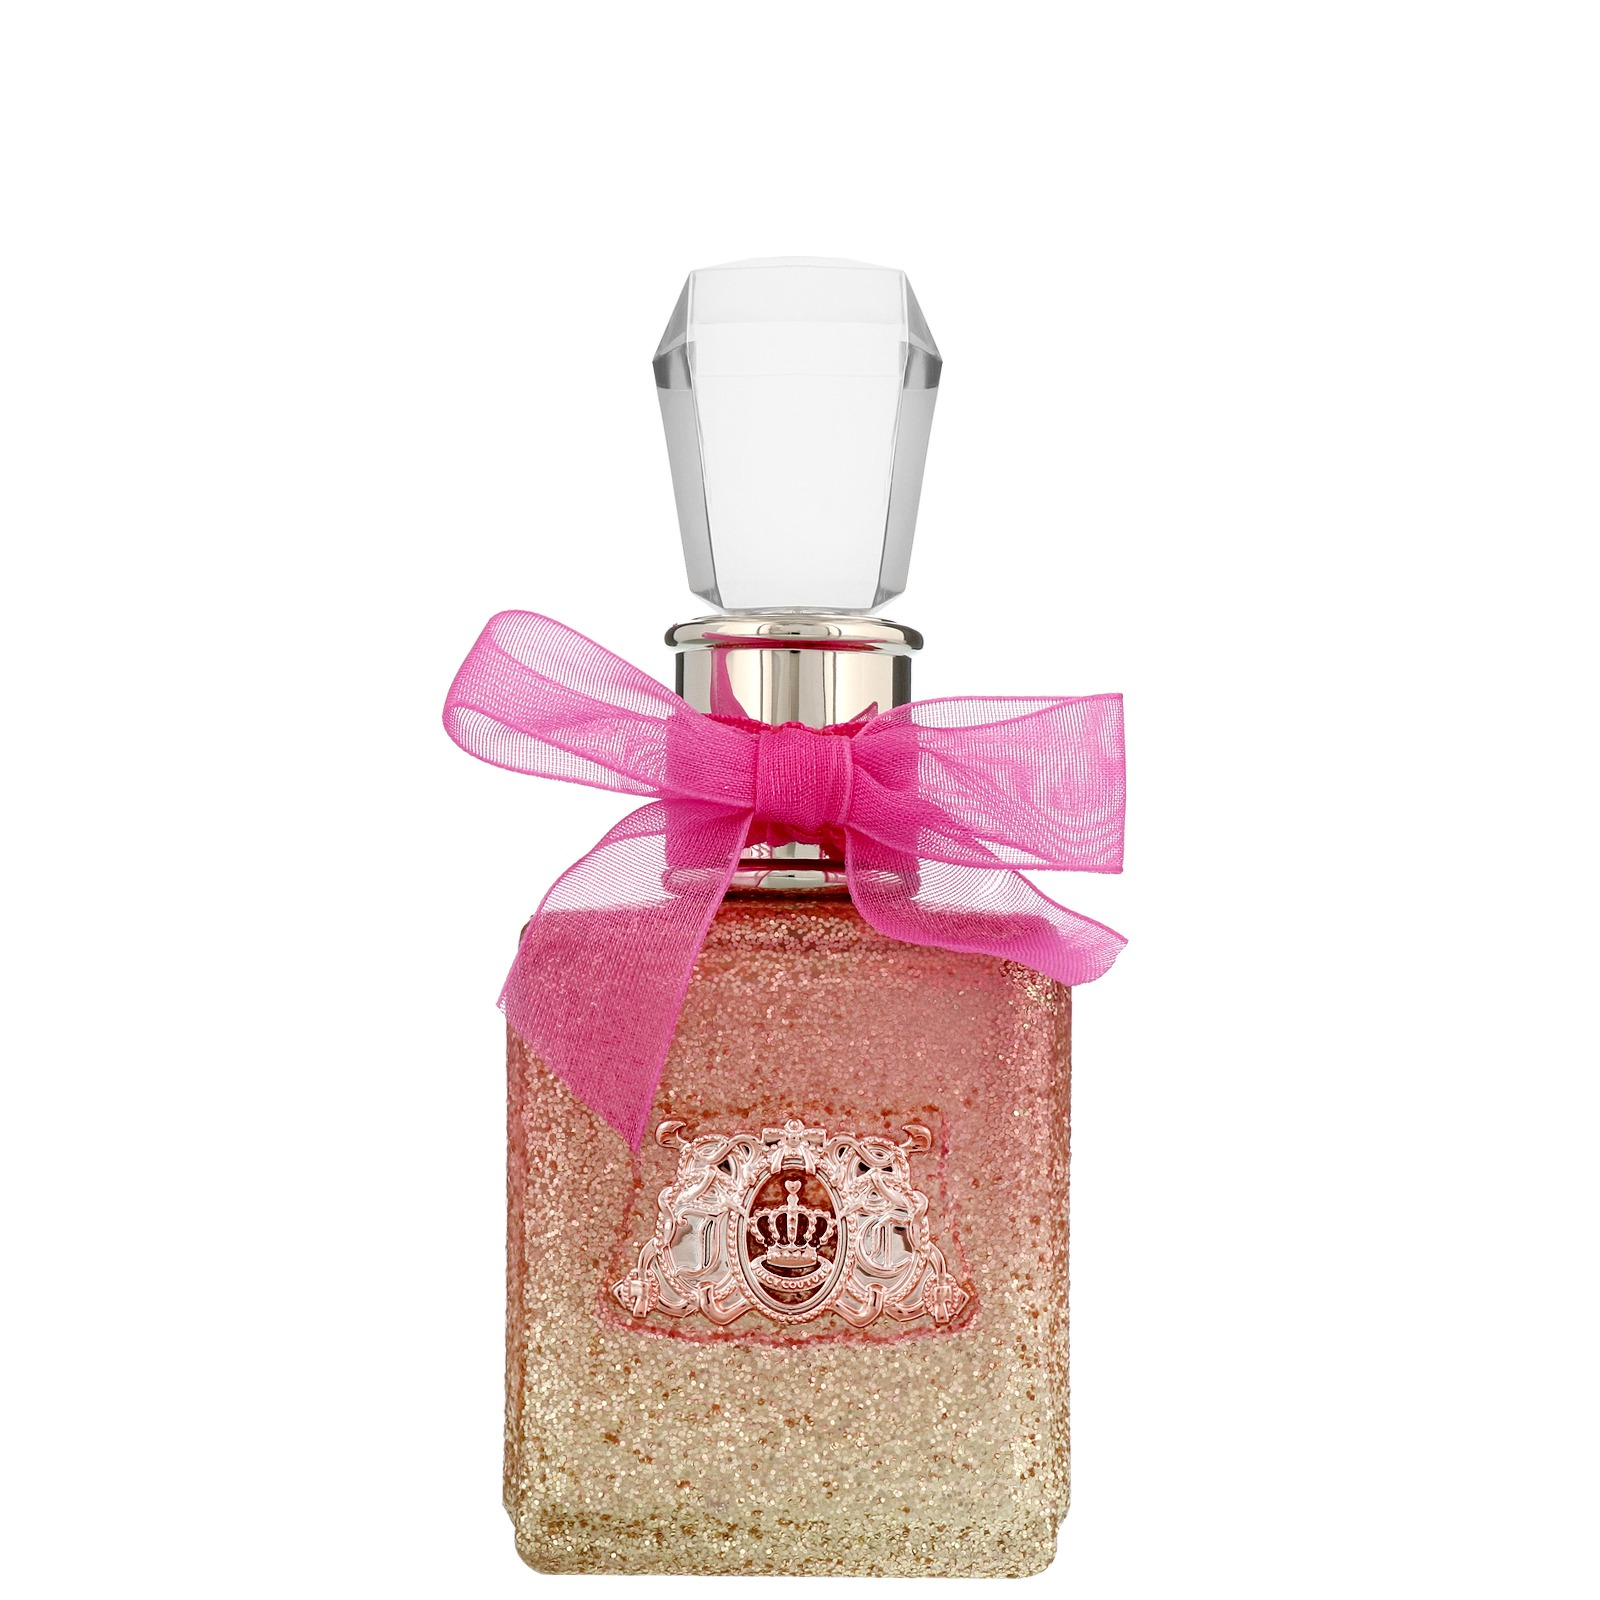 Juicy Couture Viva La Juicy Rose Eau de Parfum Spray 30ml